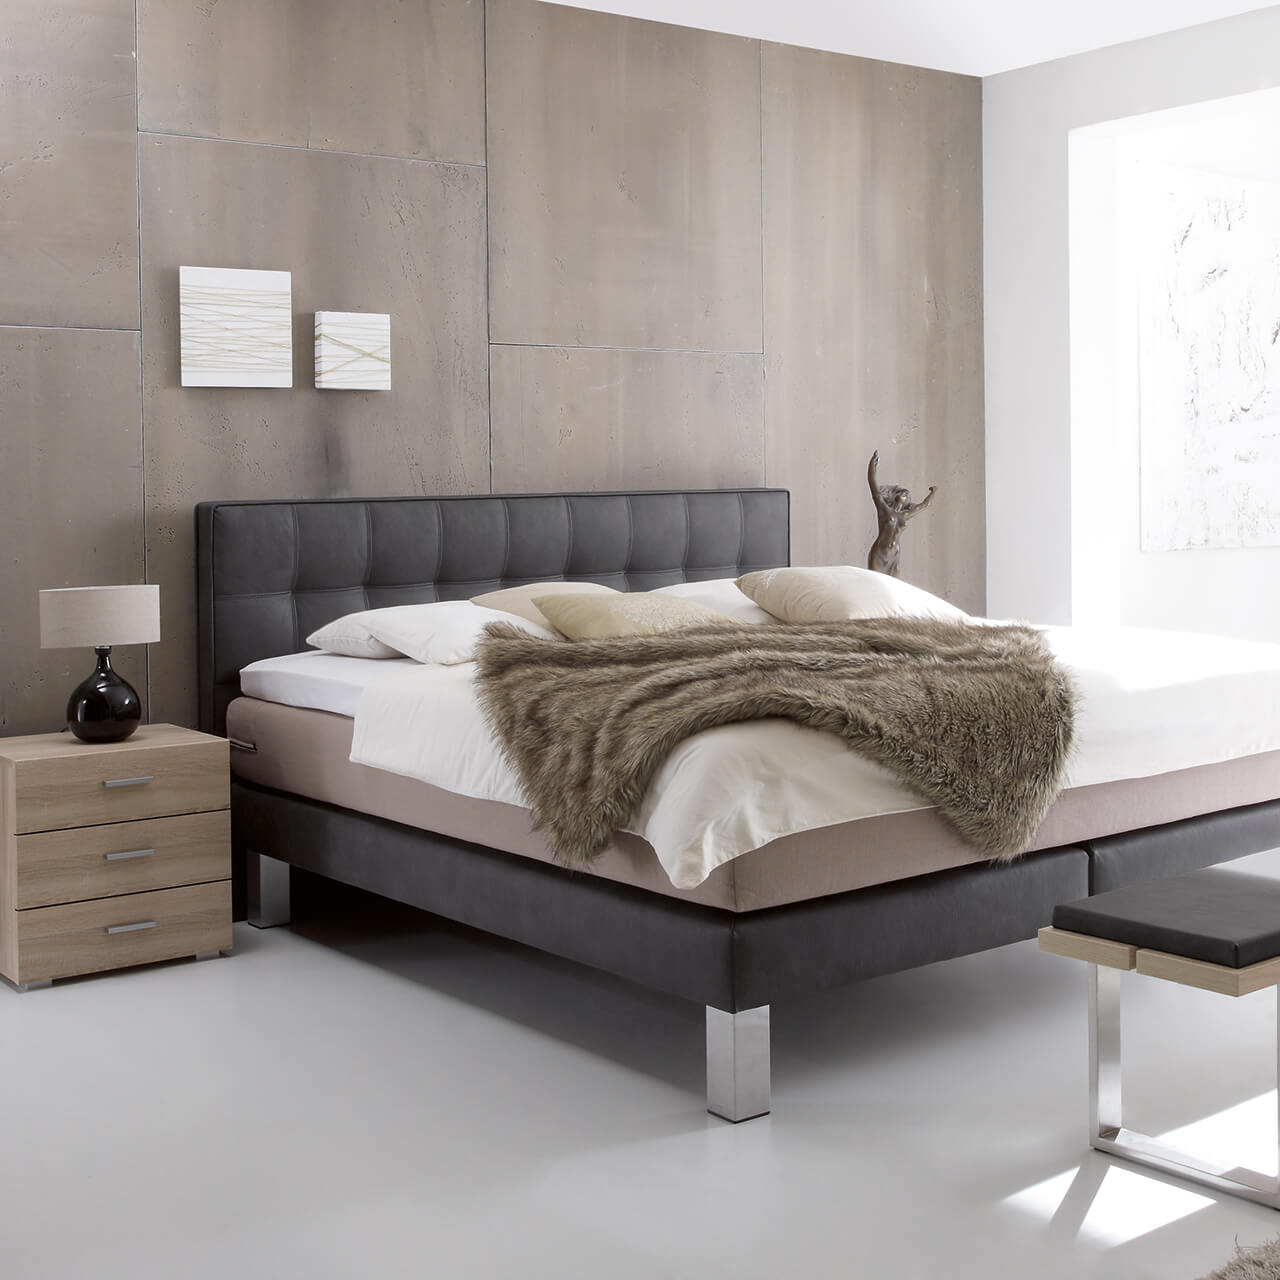 boxspringbett modern umgebaut zum boxspring wasserbett suma wasserbetten. Black Bedroom Furniture Sets. Home Design Ideas